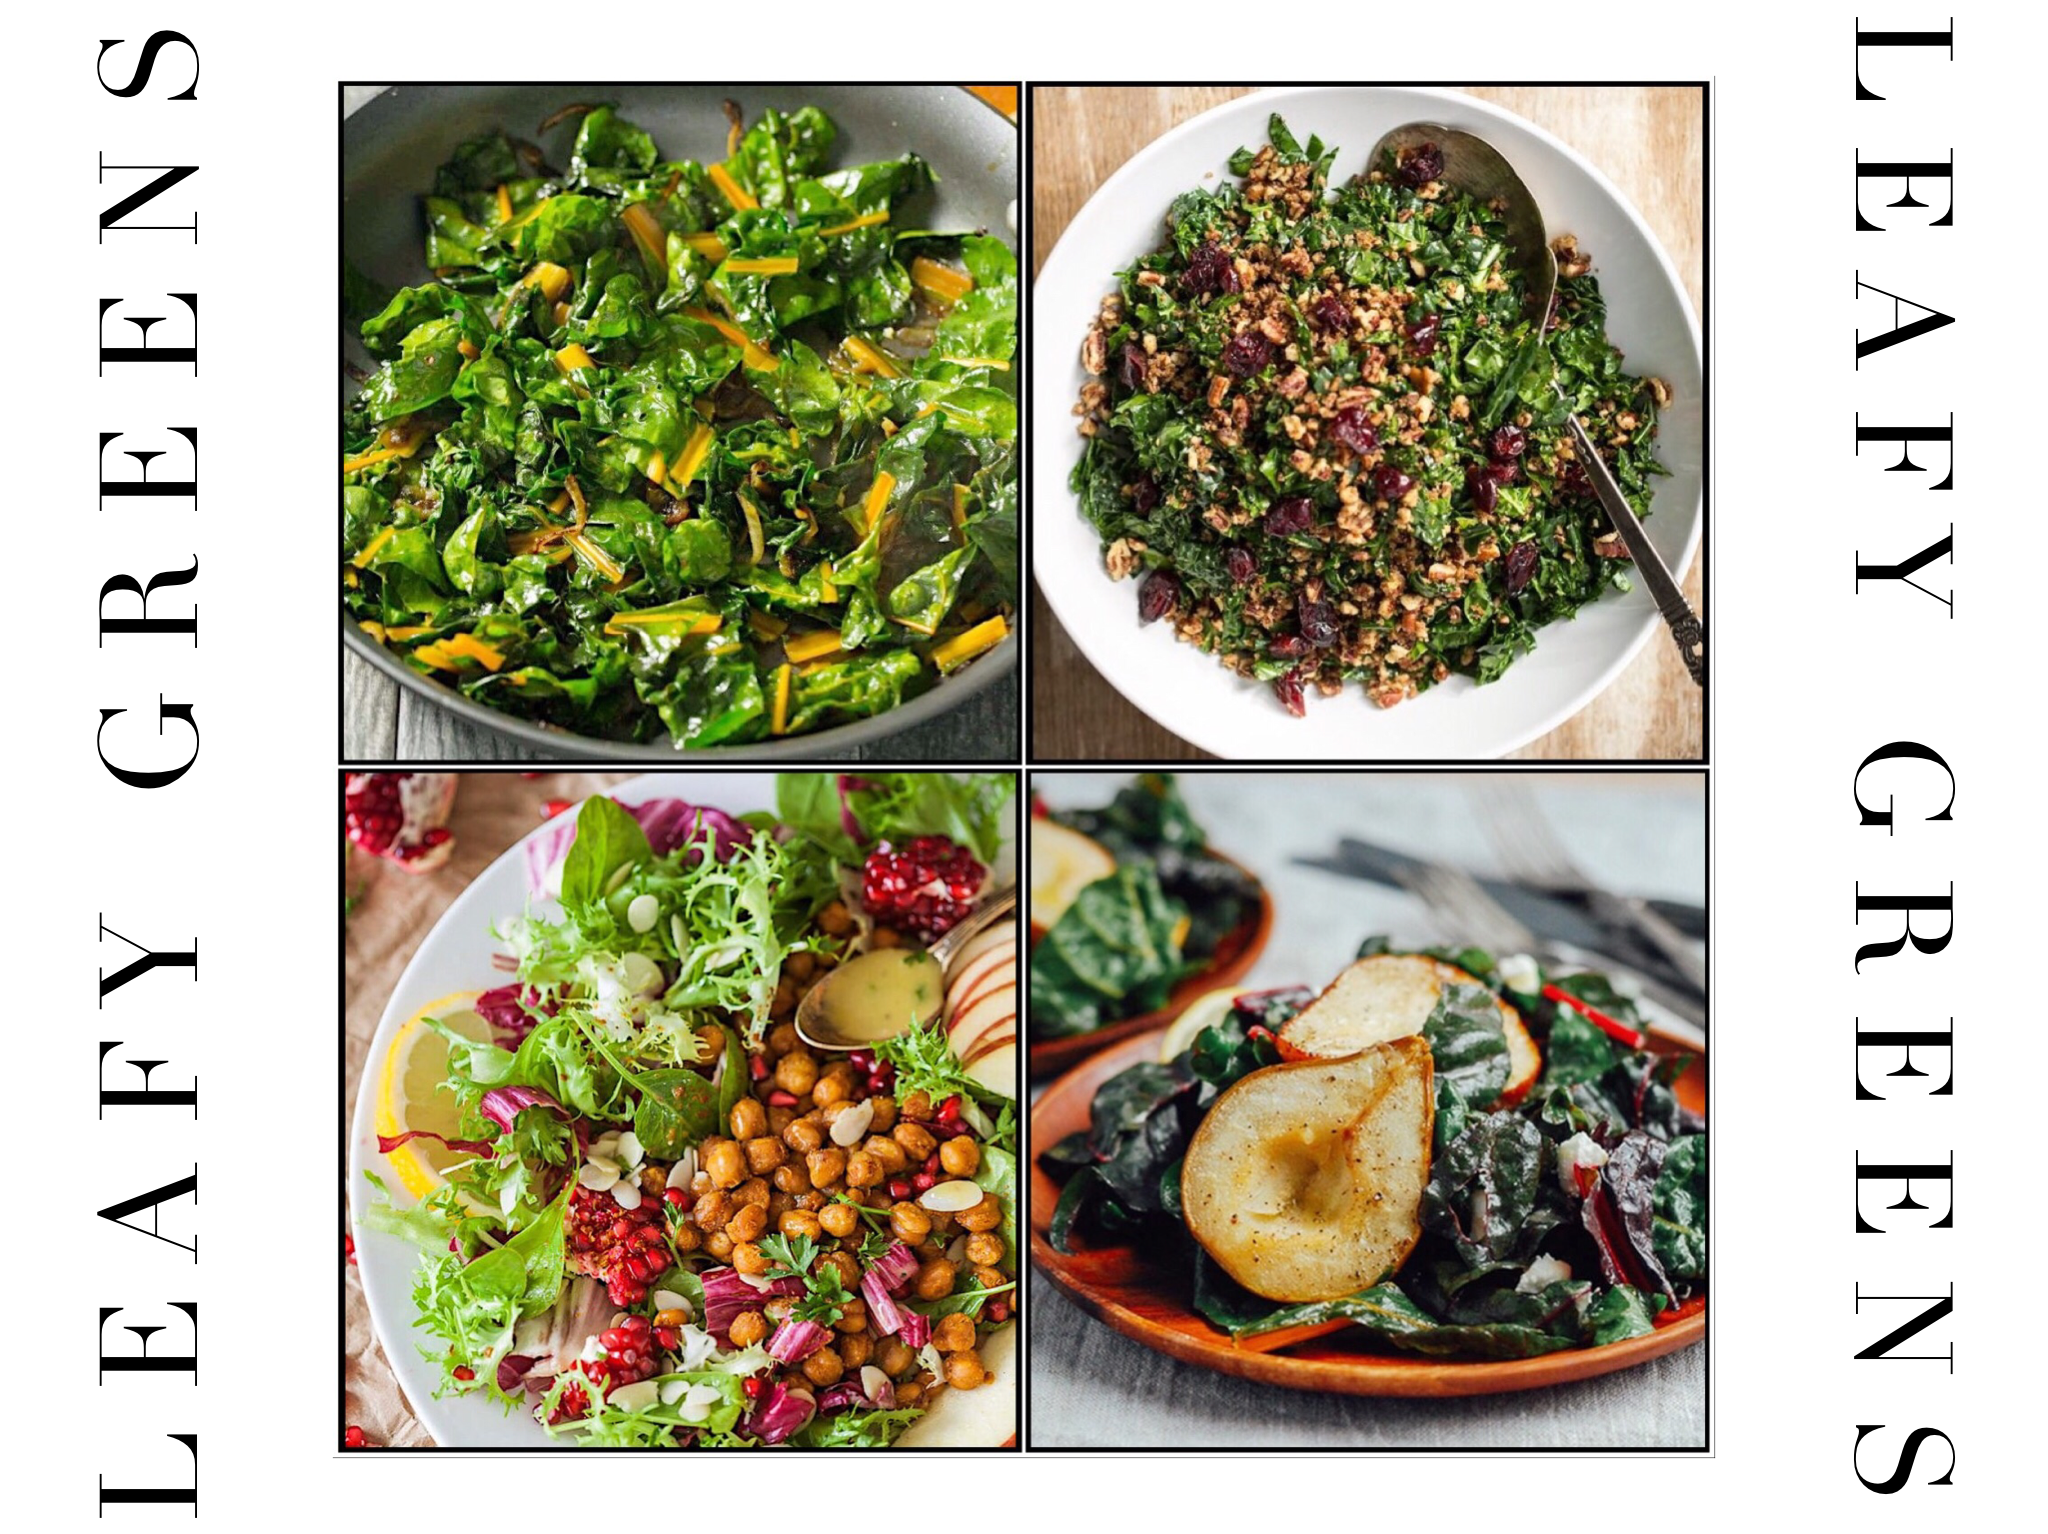 Leafy Greens - Your loving lettuce may not disappear from your grocery store all year long, it's a summer vegetable; and although I won't ask you to give up on it, I'd suggest you to keep your mind open to options such as spinach, kale, escarole, and chard.